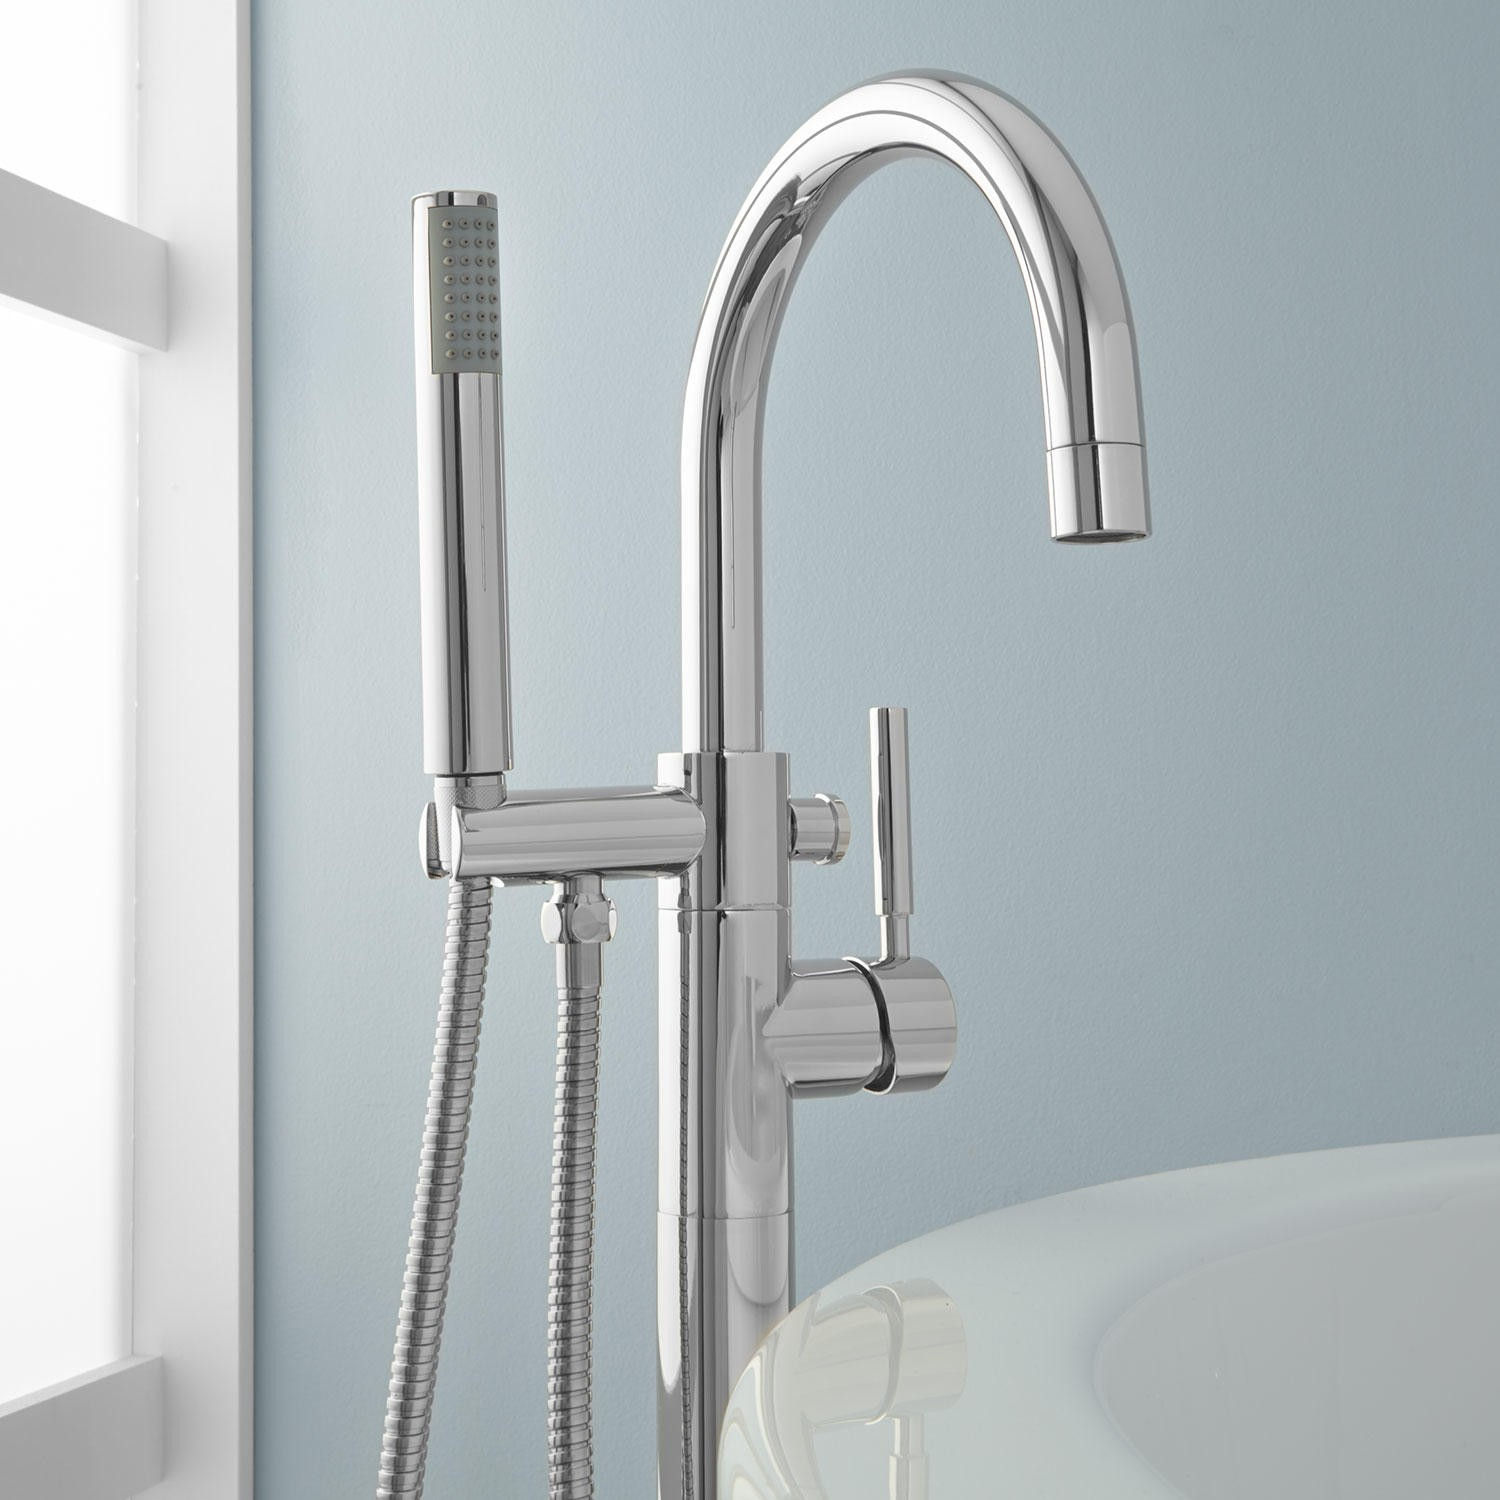 Buy Tub Faucets online - homerises.com